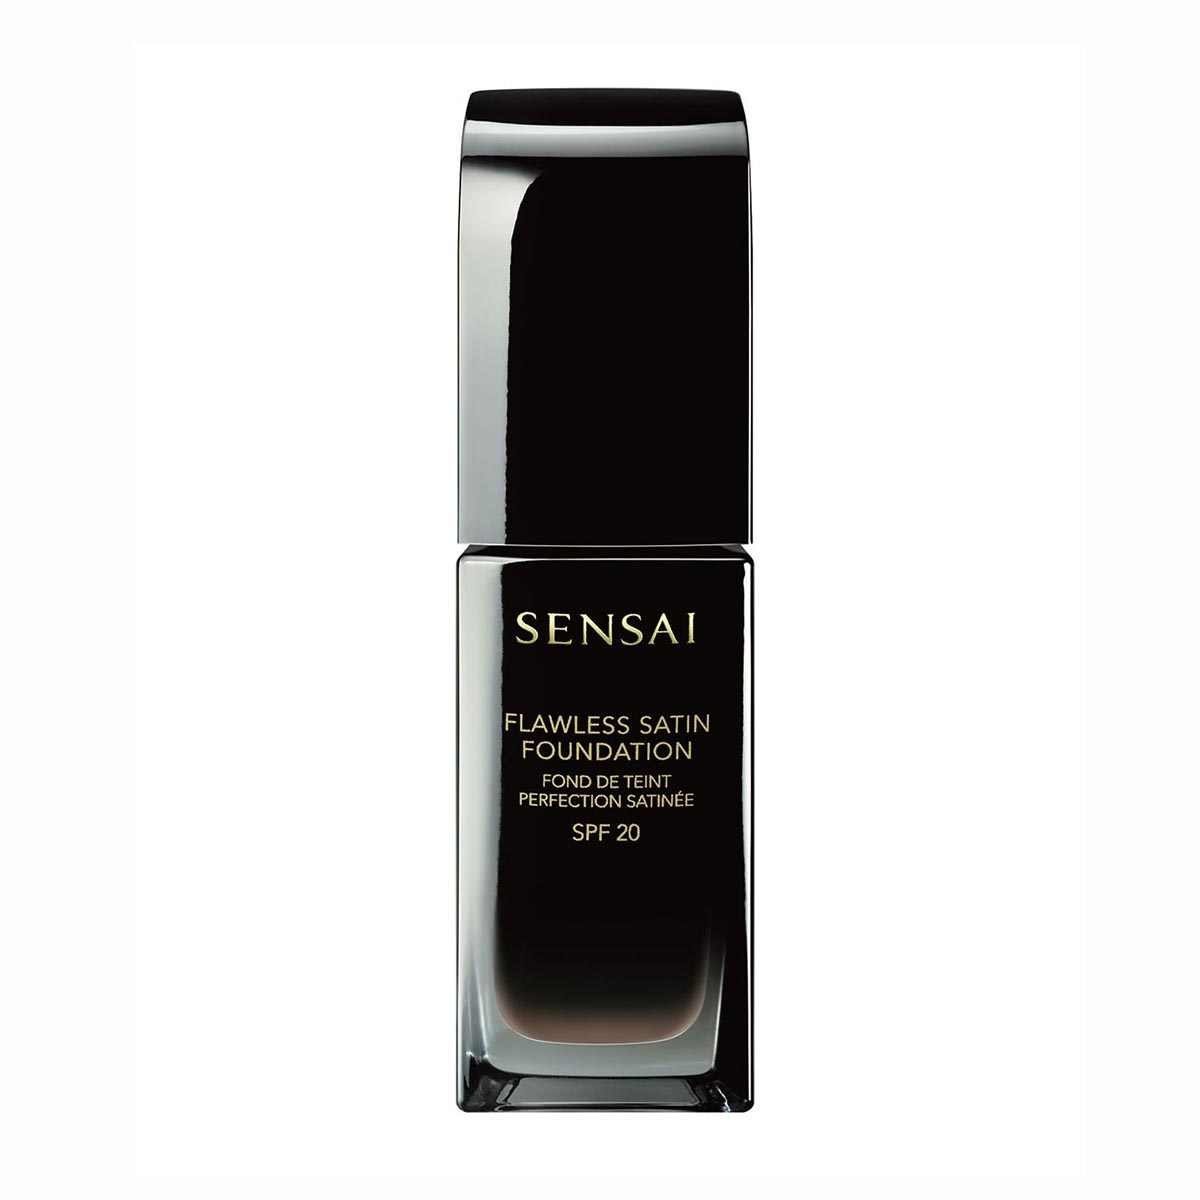 Kanebo sensai flawless satin foundation fs206 brown beige